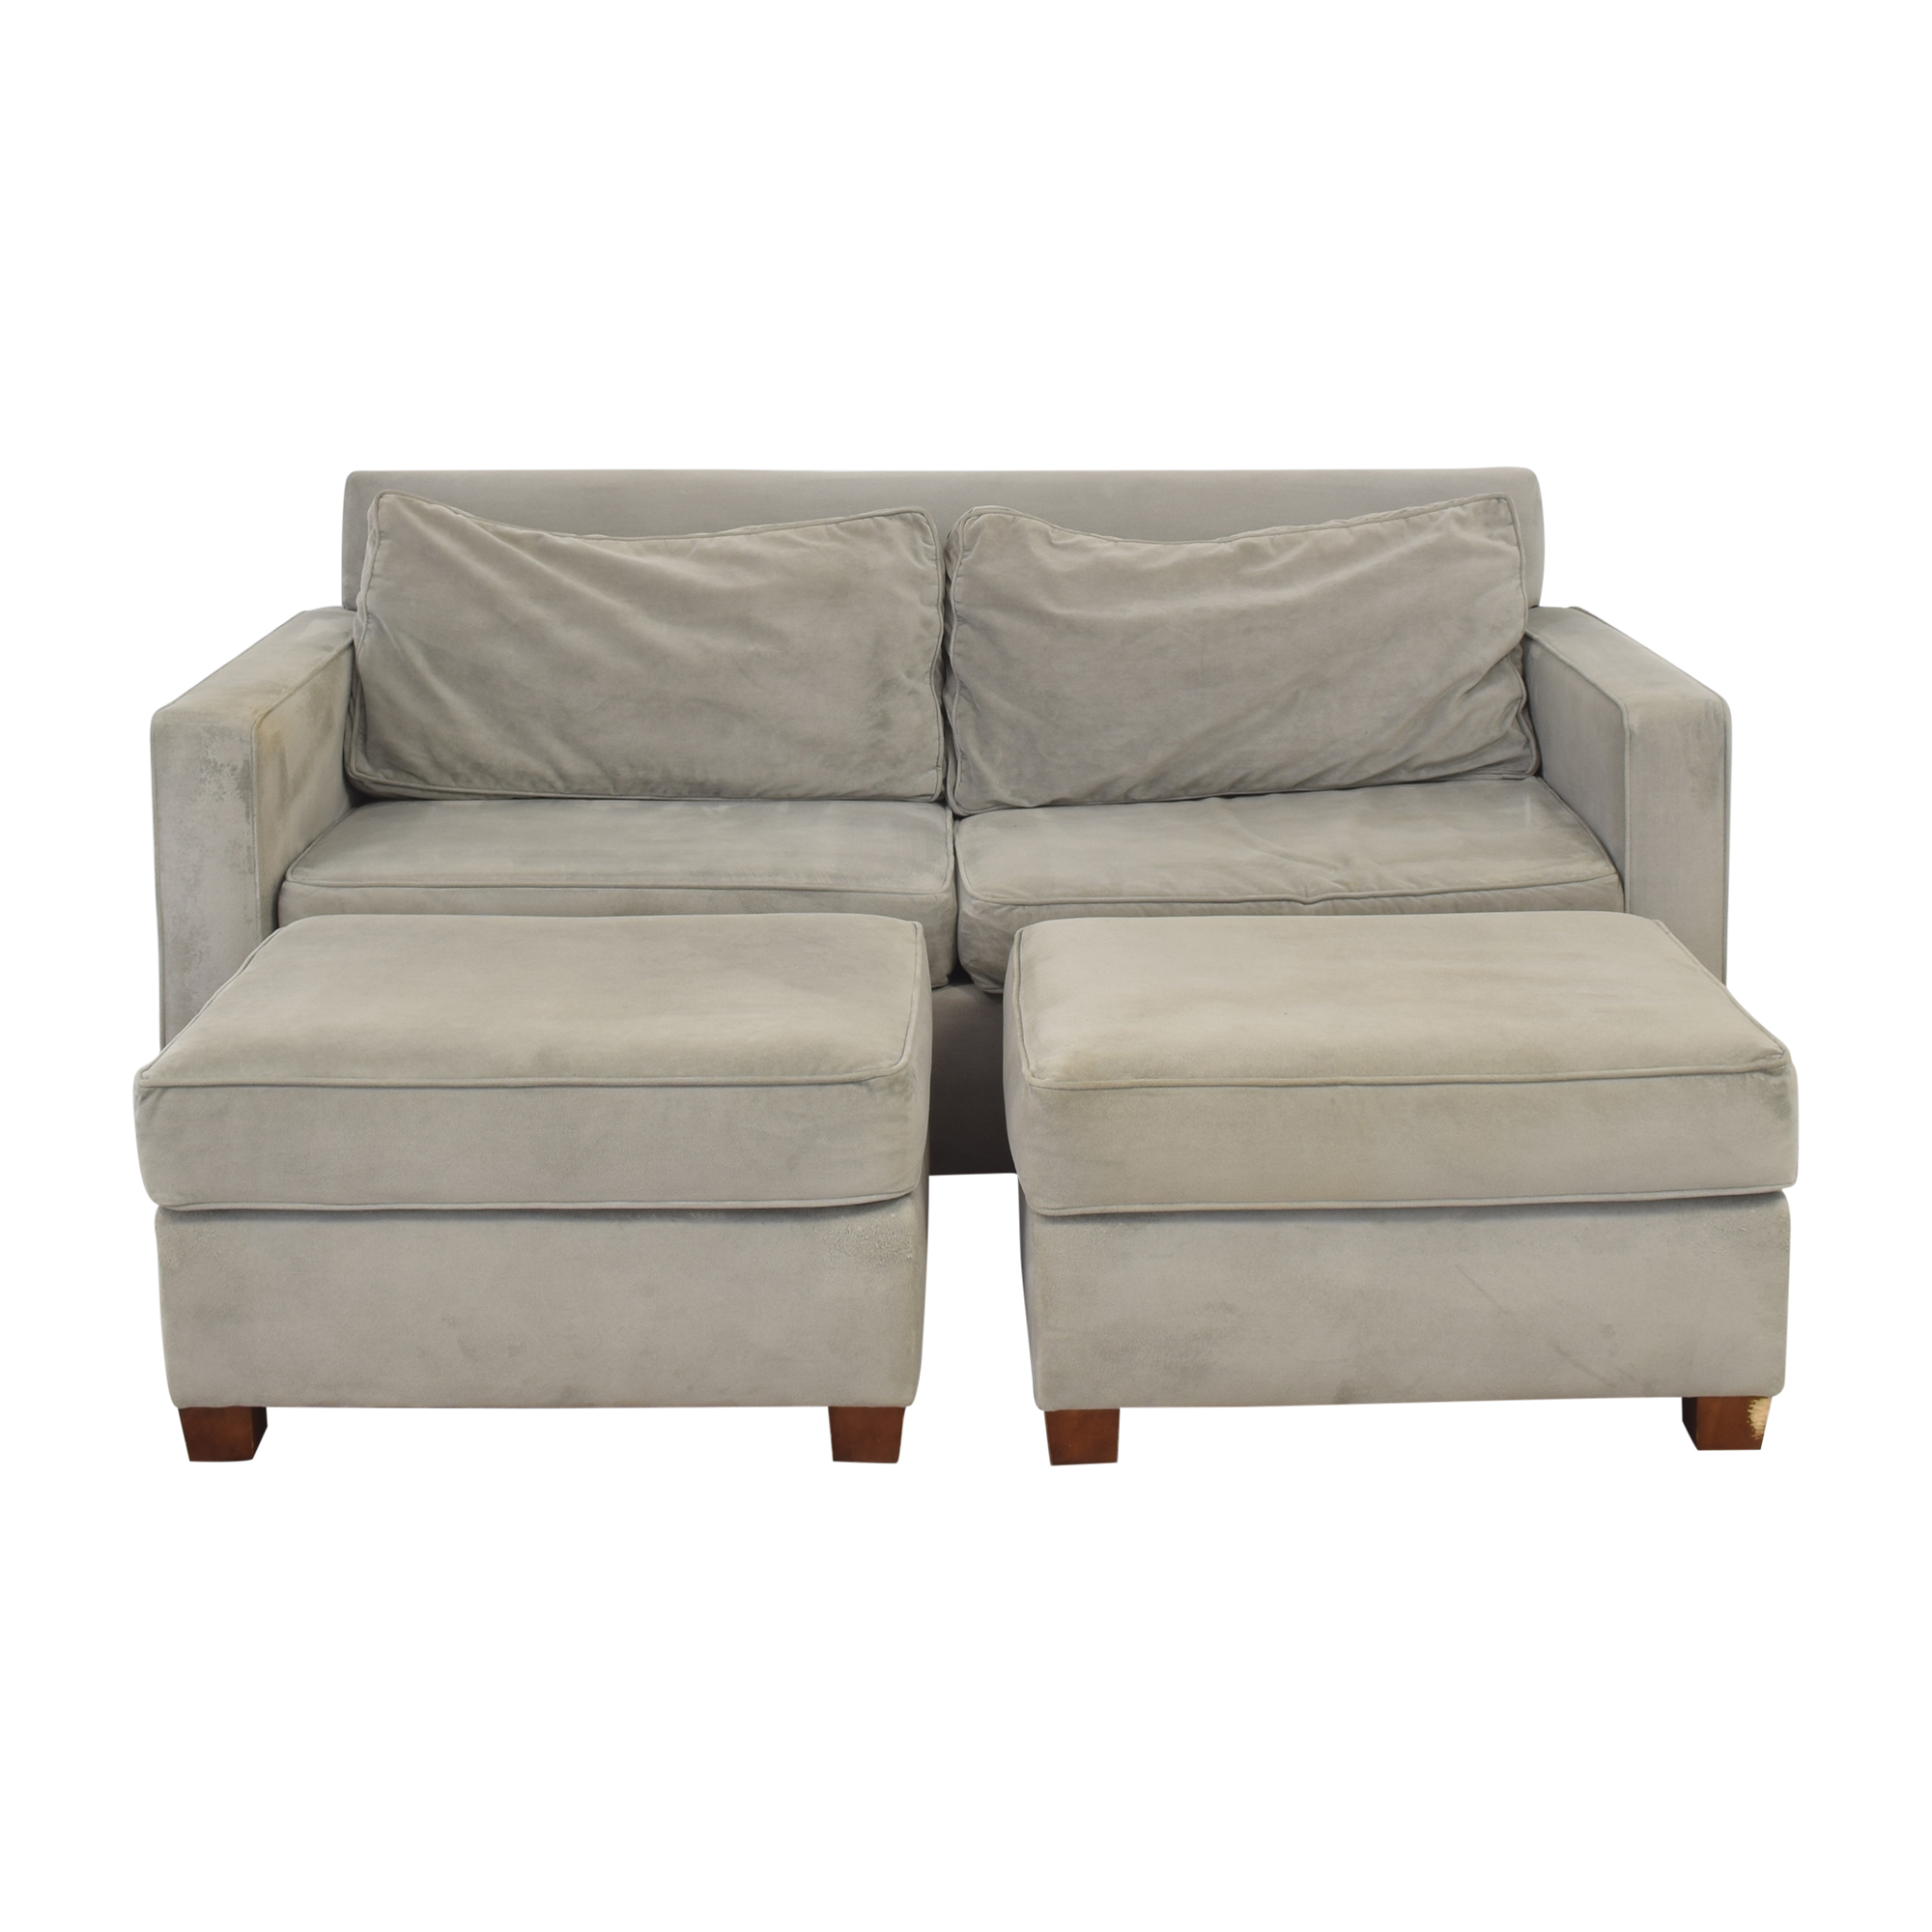 West Elm West Elm Henry Sofa with Two Matching Ottomans ma